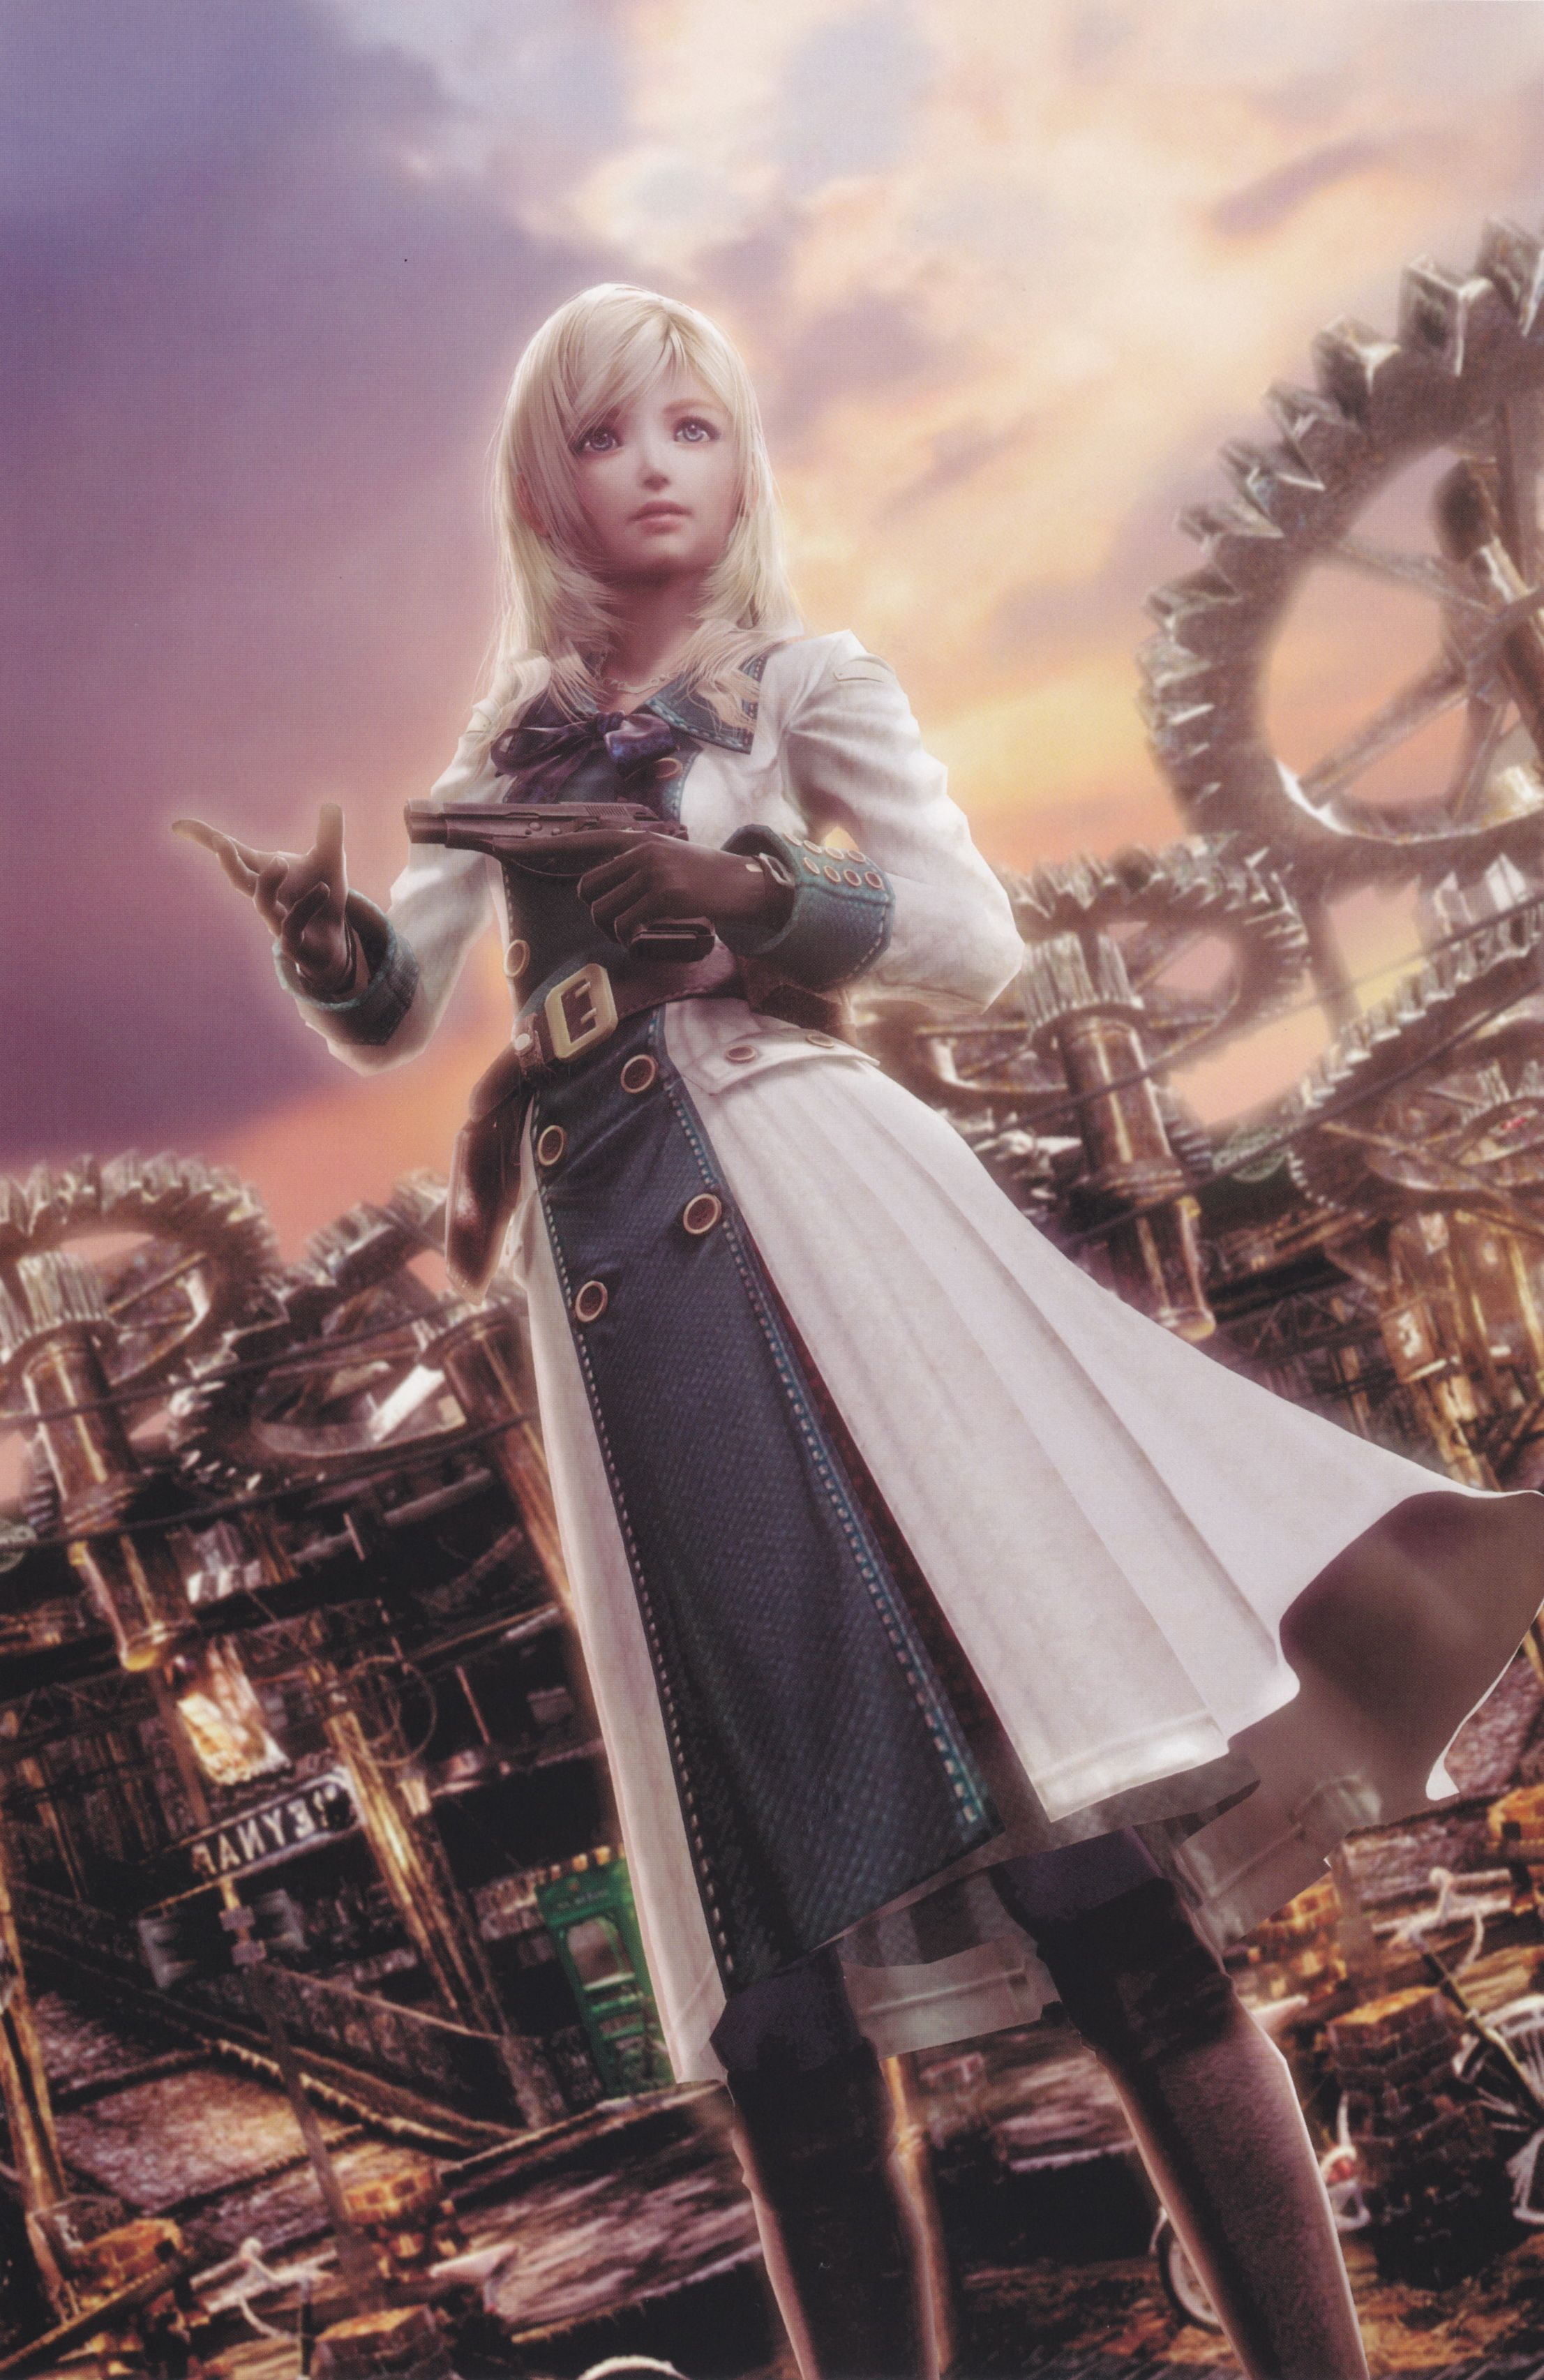 Leanne / Reanbell - Resonance of Fate | Resonance of fate, Fate, Shadow of  the colossus